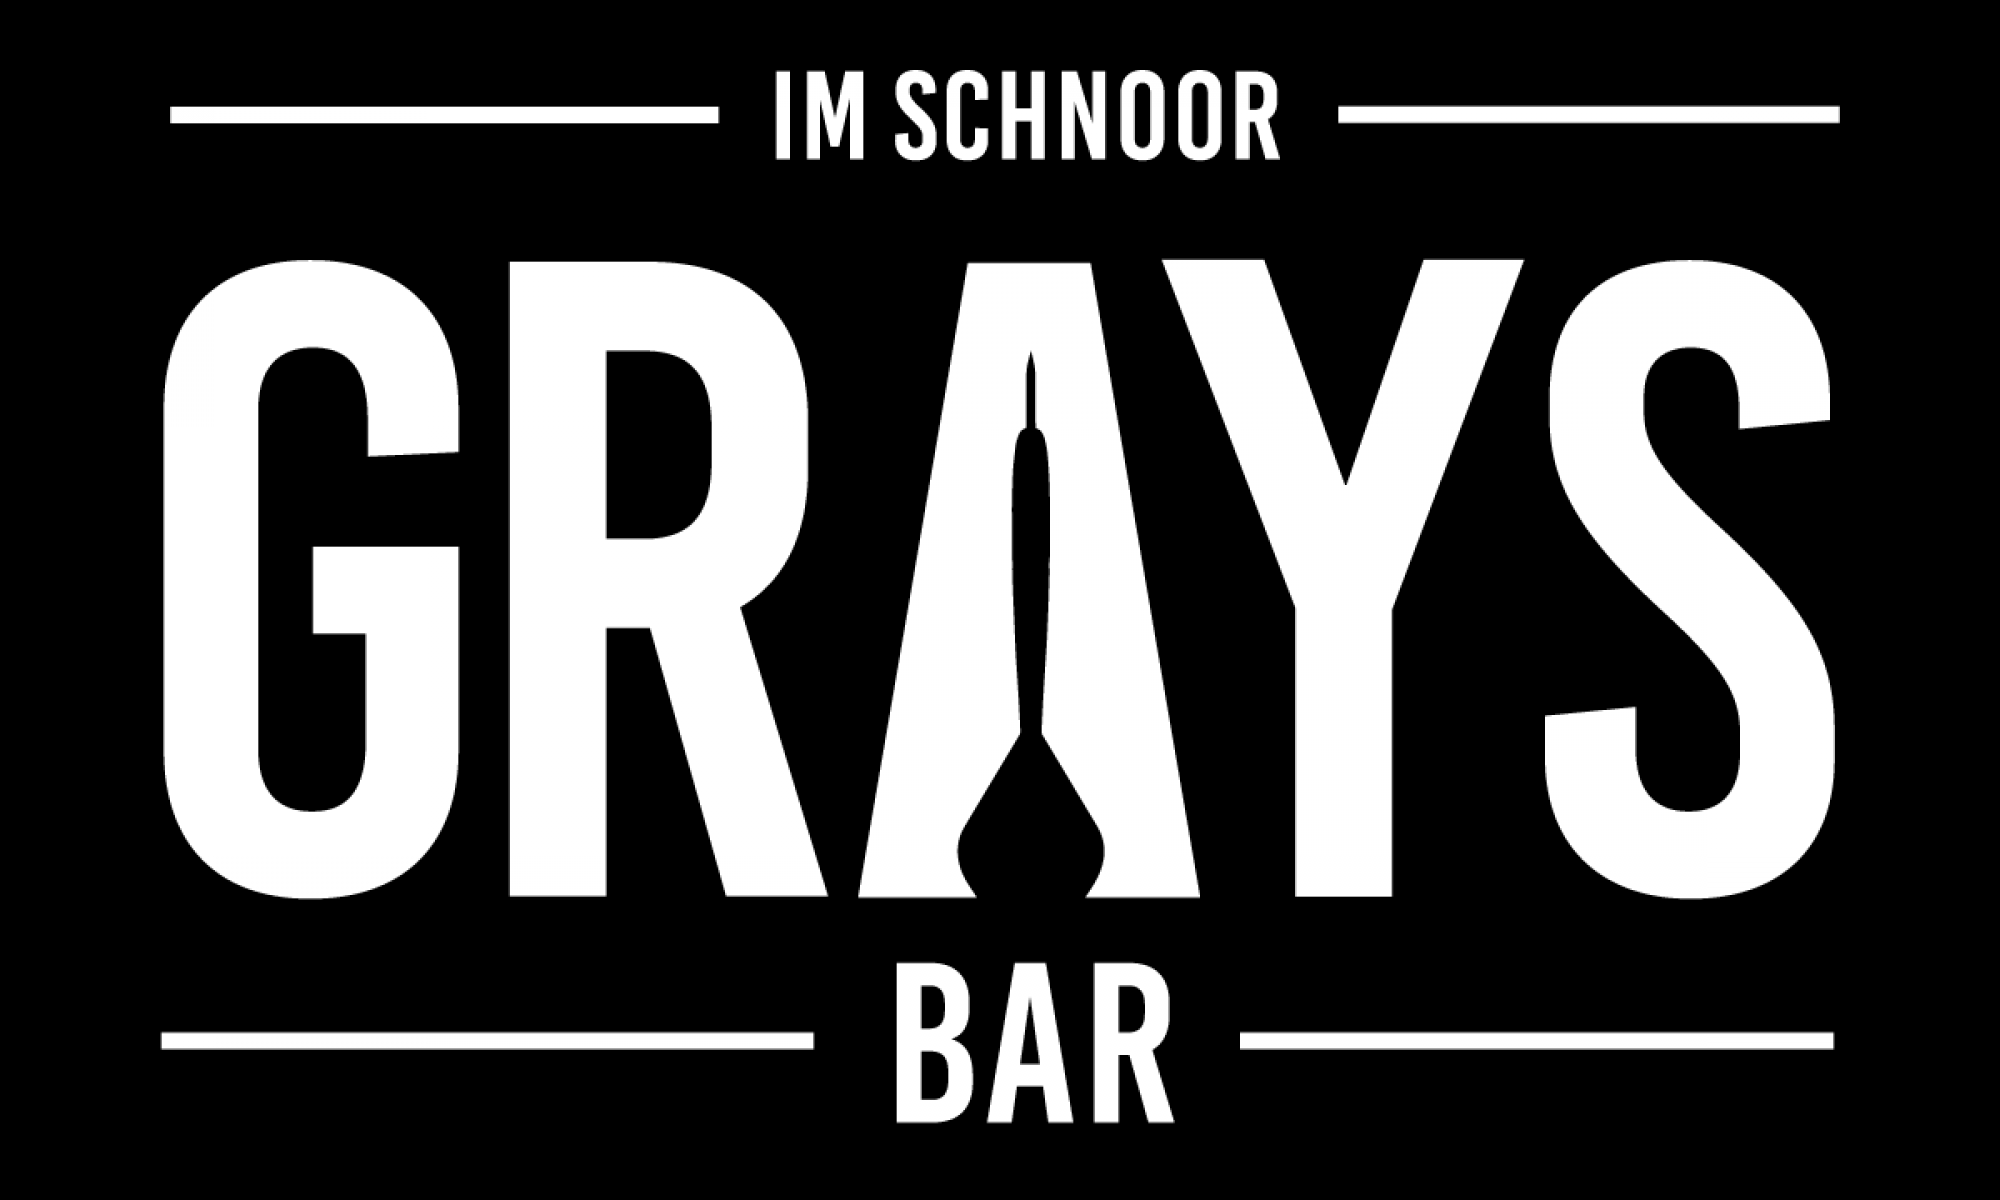 Grays bar